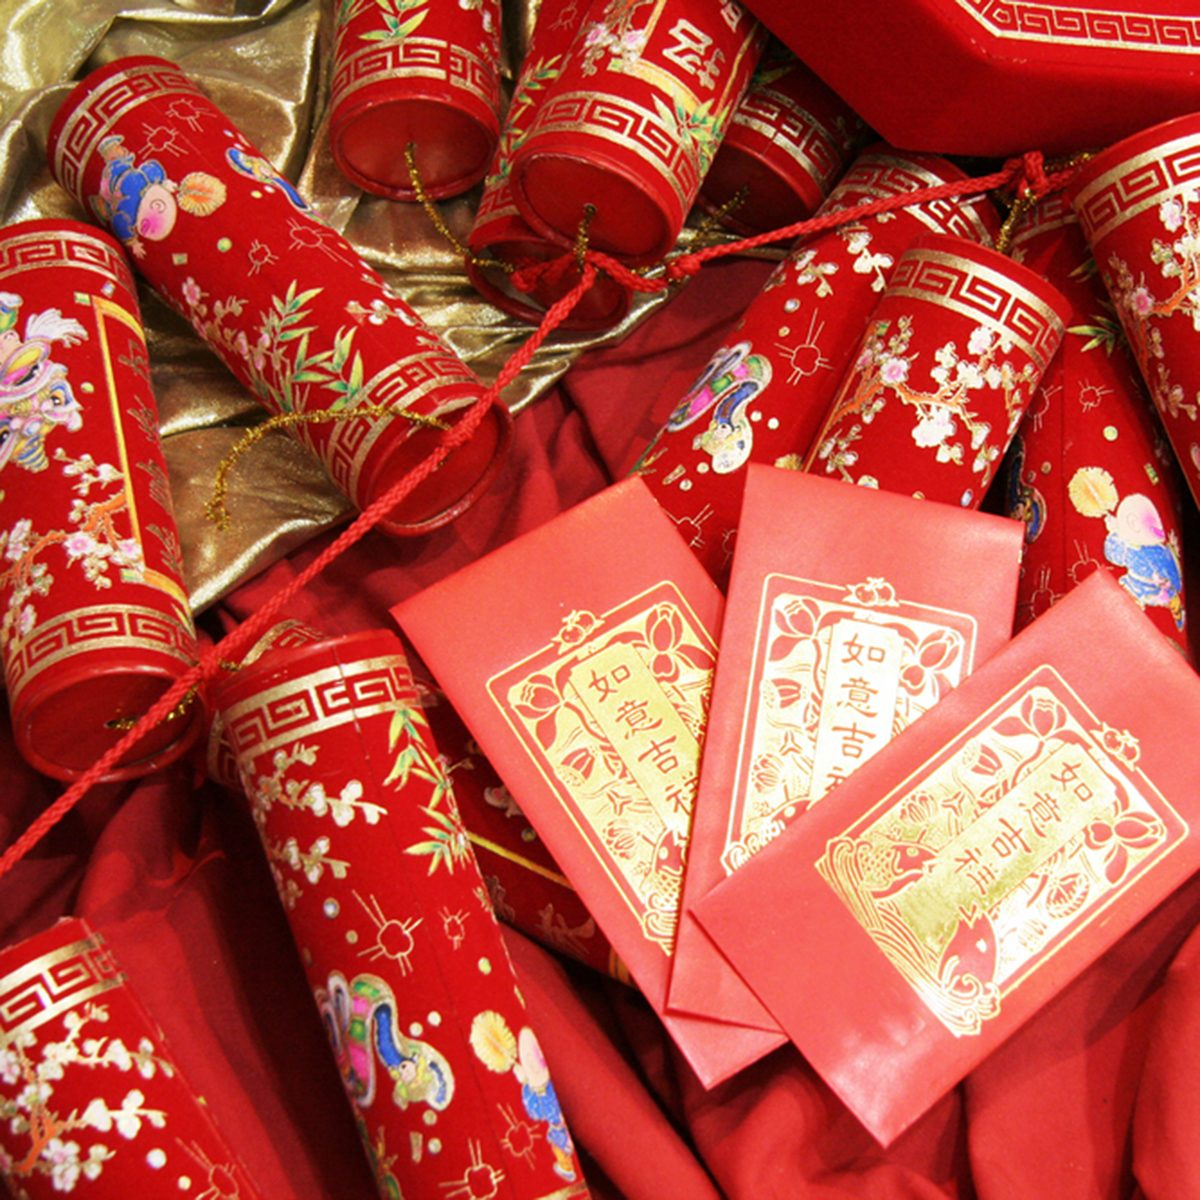 chinese celebration firecrackers and red envelope; Shutterstock ID 1025462